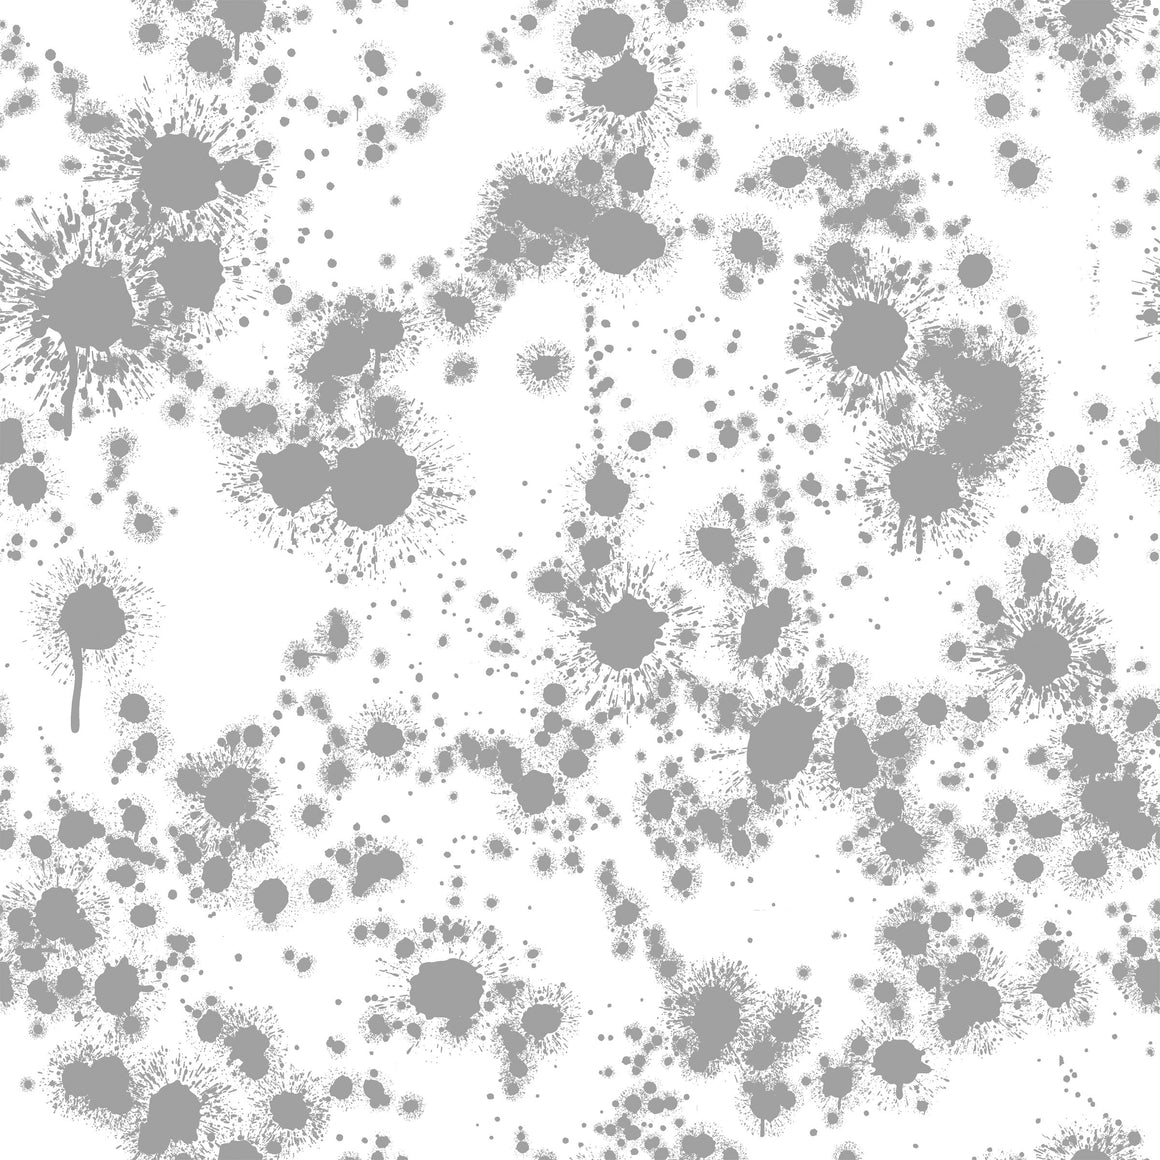 Grey Paint Splatter Look, Textures for Club Fabrics - Raspberry Creek Fabrics